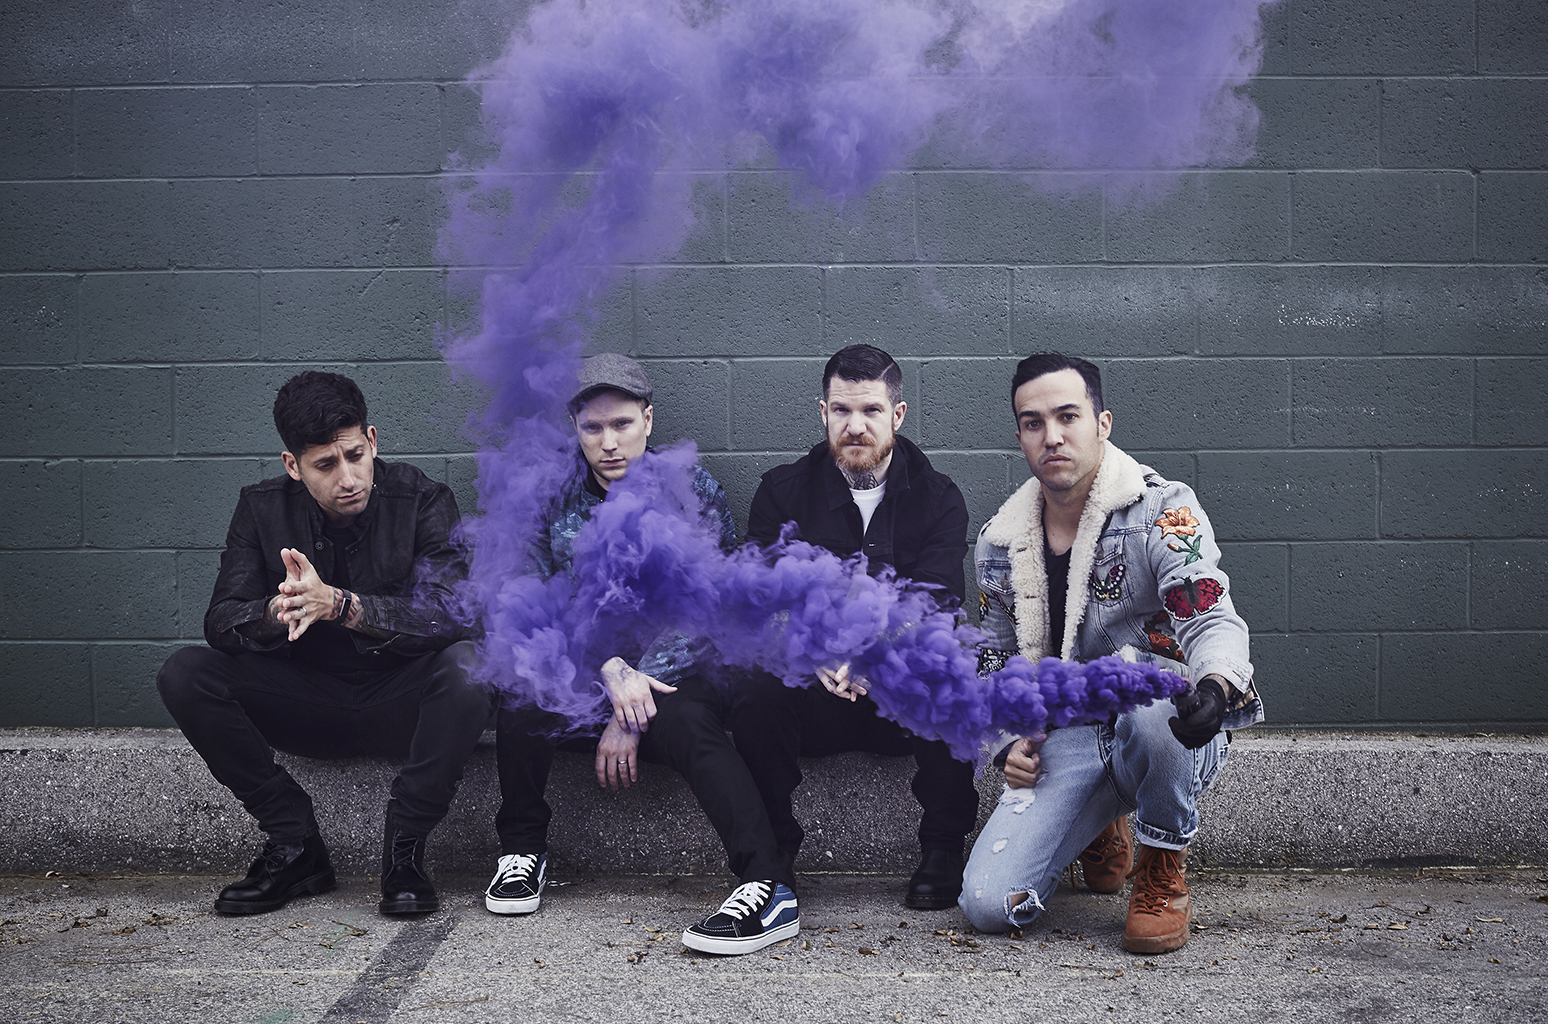 Fall Out Boy announce hometown show at Chicago's own Wrigley Field